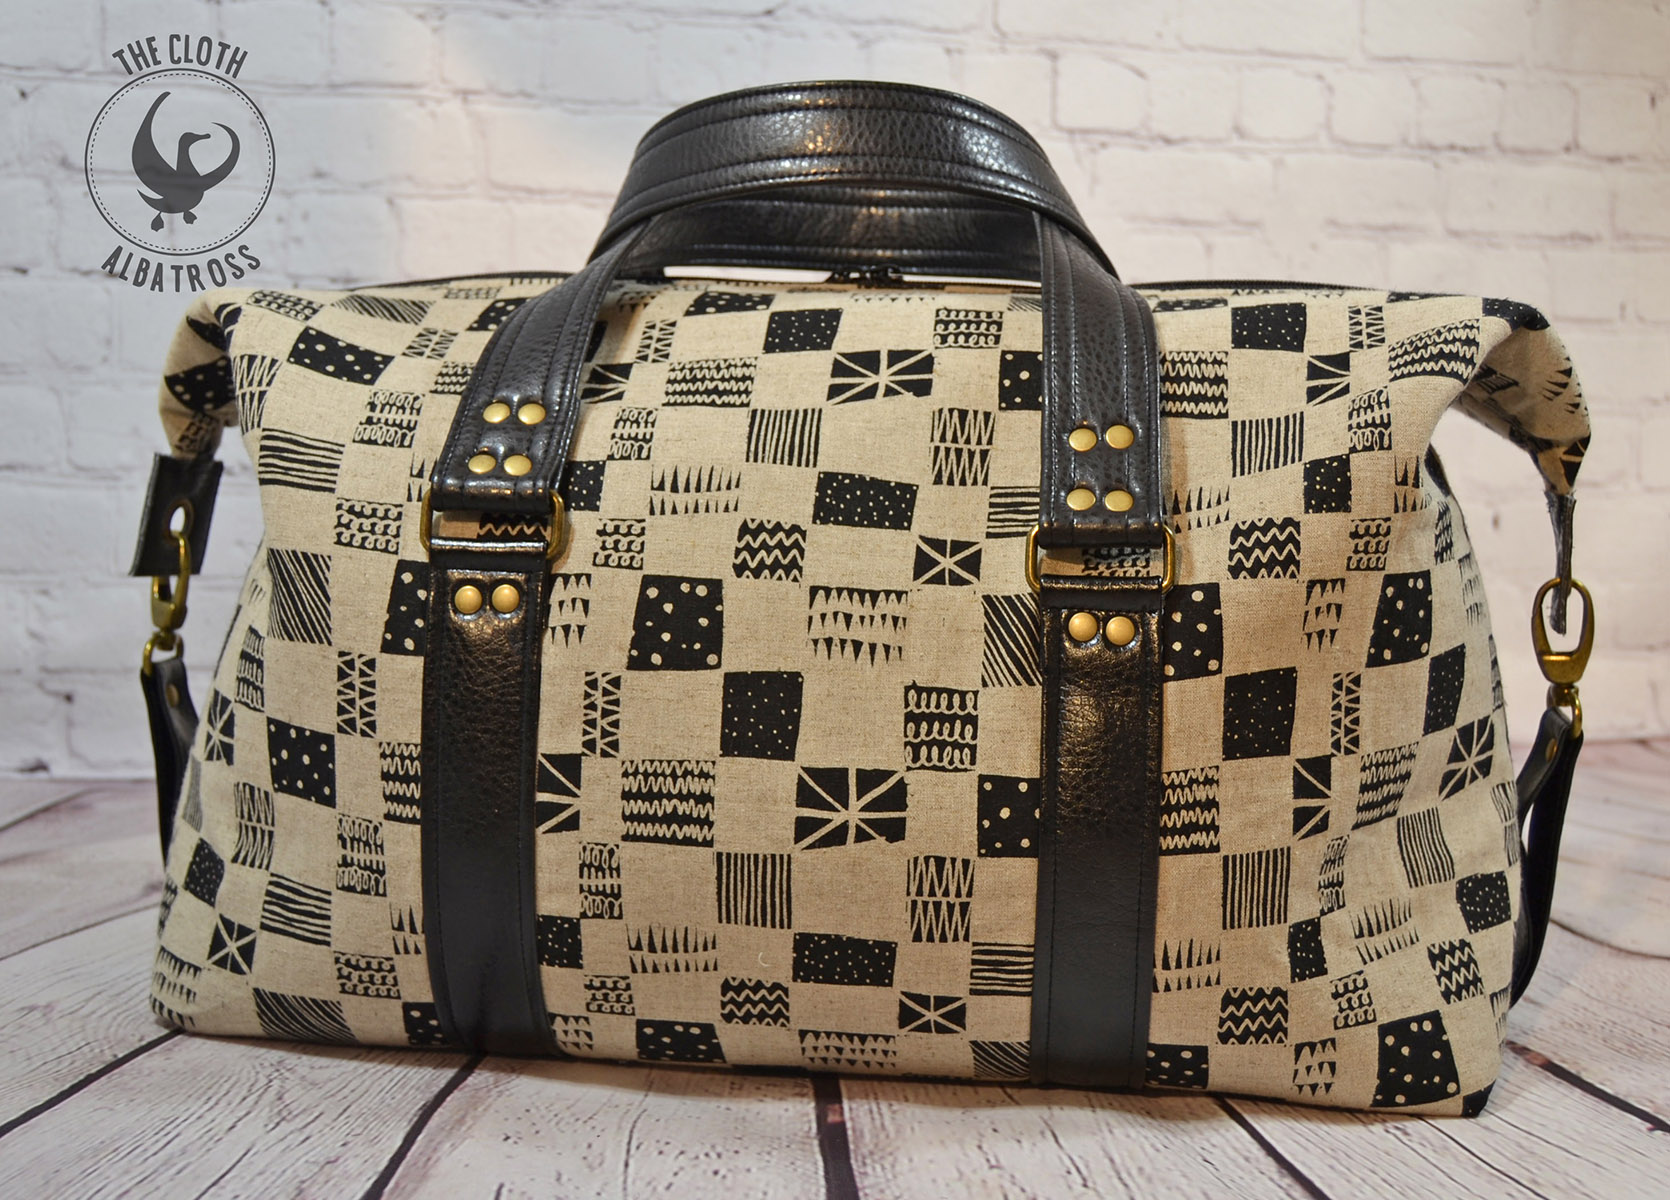 Sew Sweetness Emblem Duffle Bag, sewn by Crystal of the Cloth Albatross